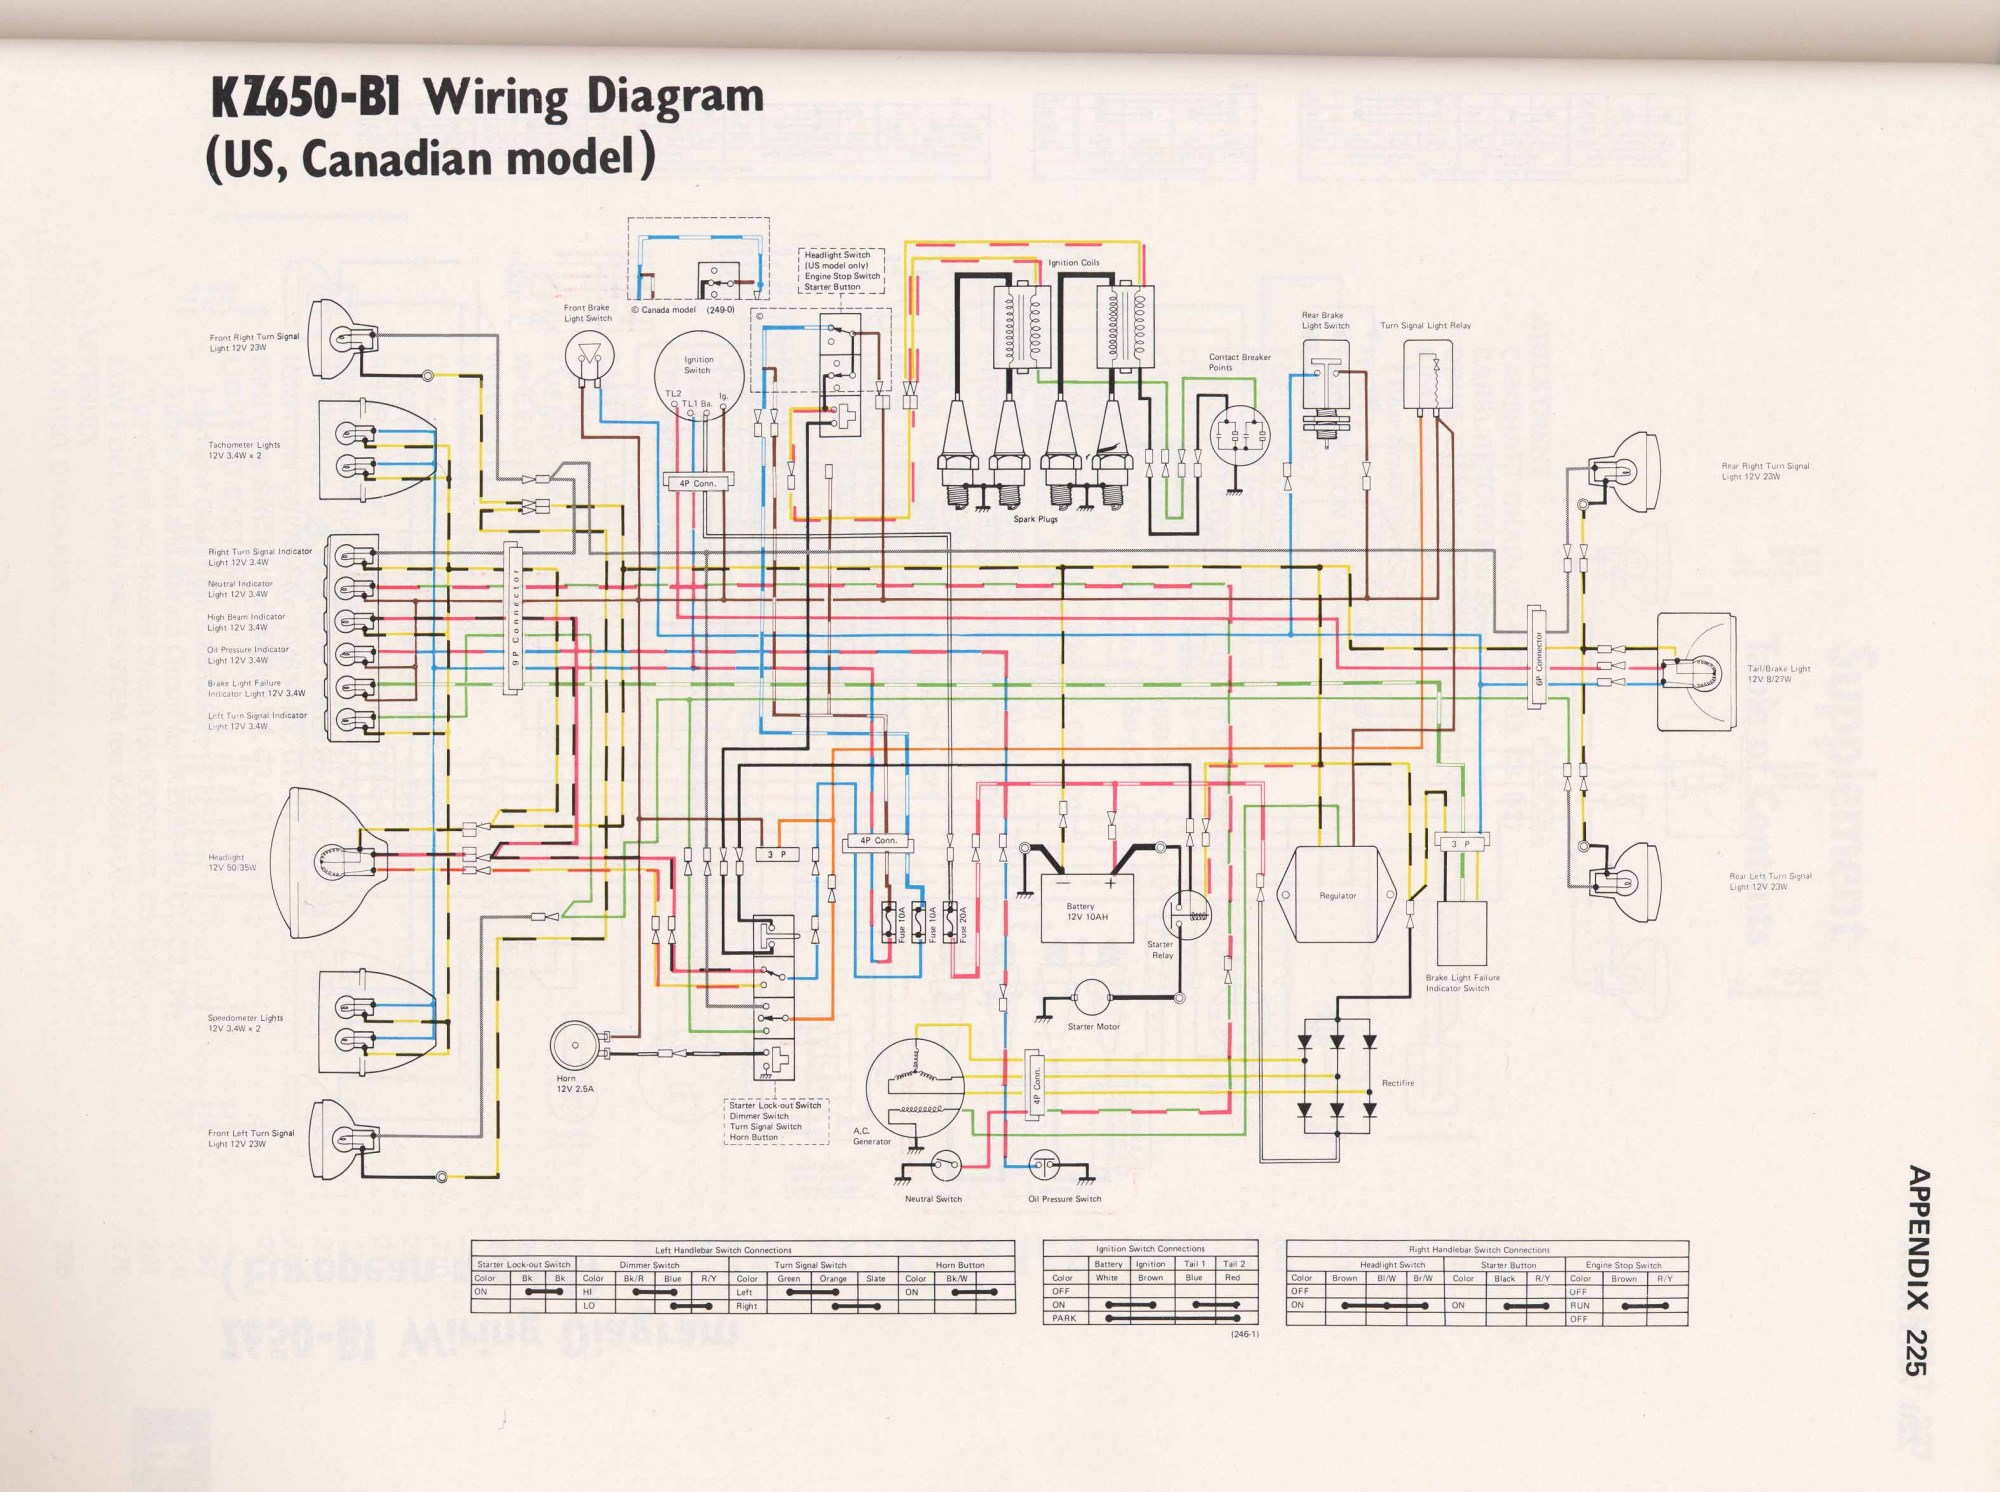 hight resolution of kz650 wiring diagram